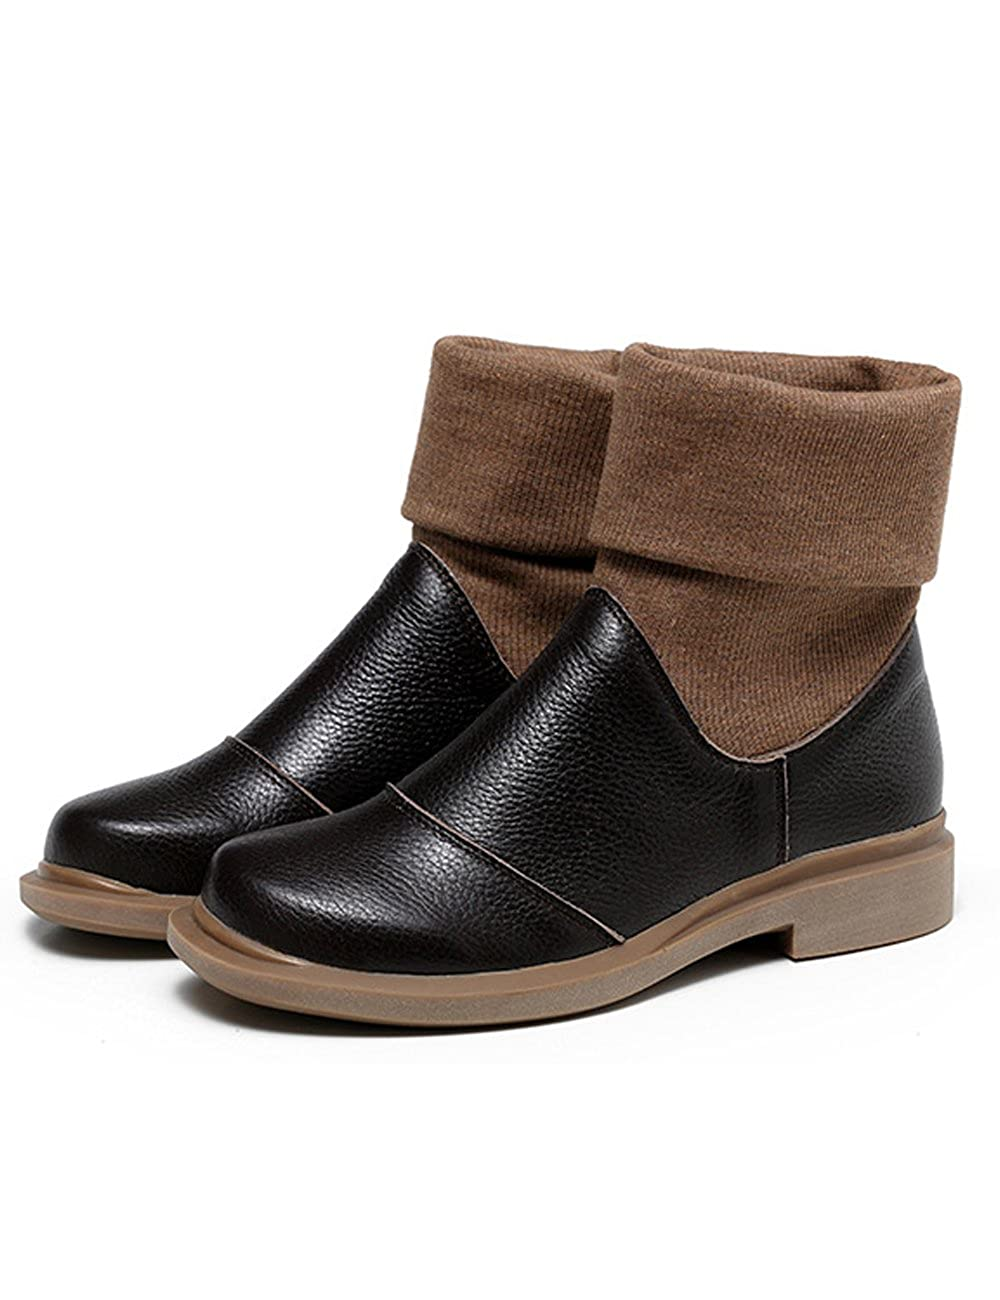 Zoulee Womens Round Toe Leather Short Boots Warm Flats Boots 06Zoulee1119